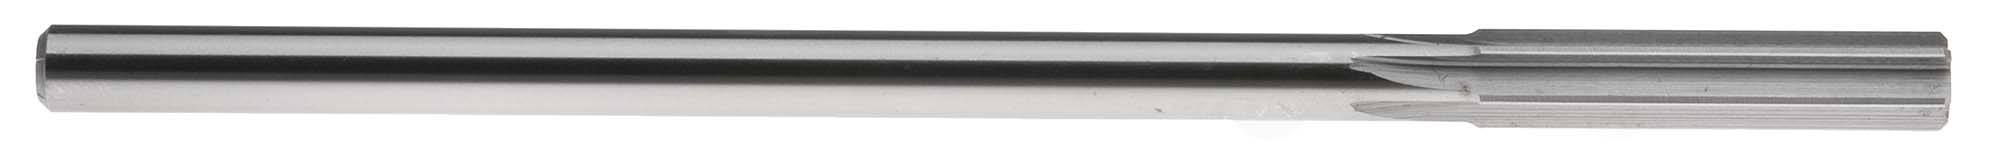 "#49 (.0730"") Straight Shank Chucking Reamer, Straight Flute, High Speed Steel"